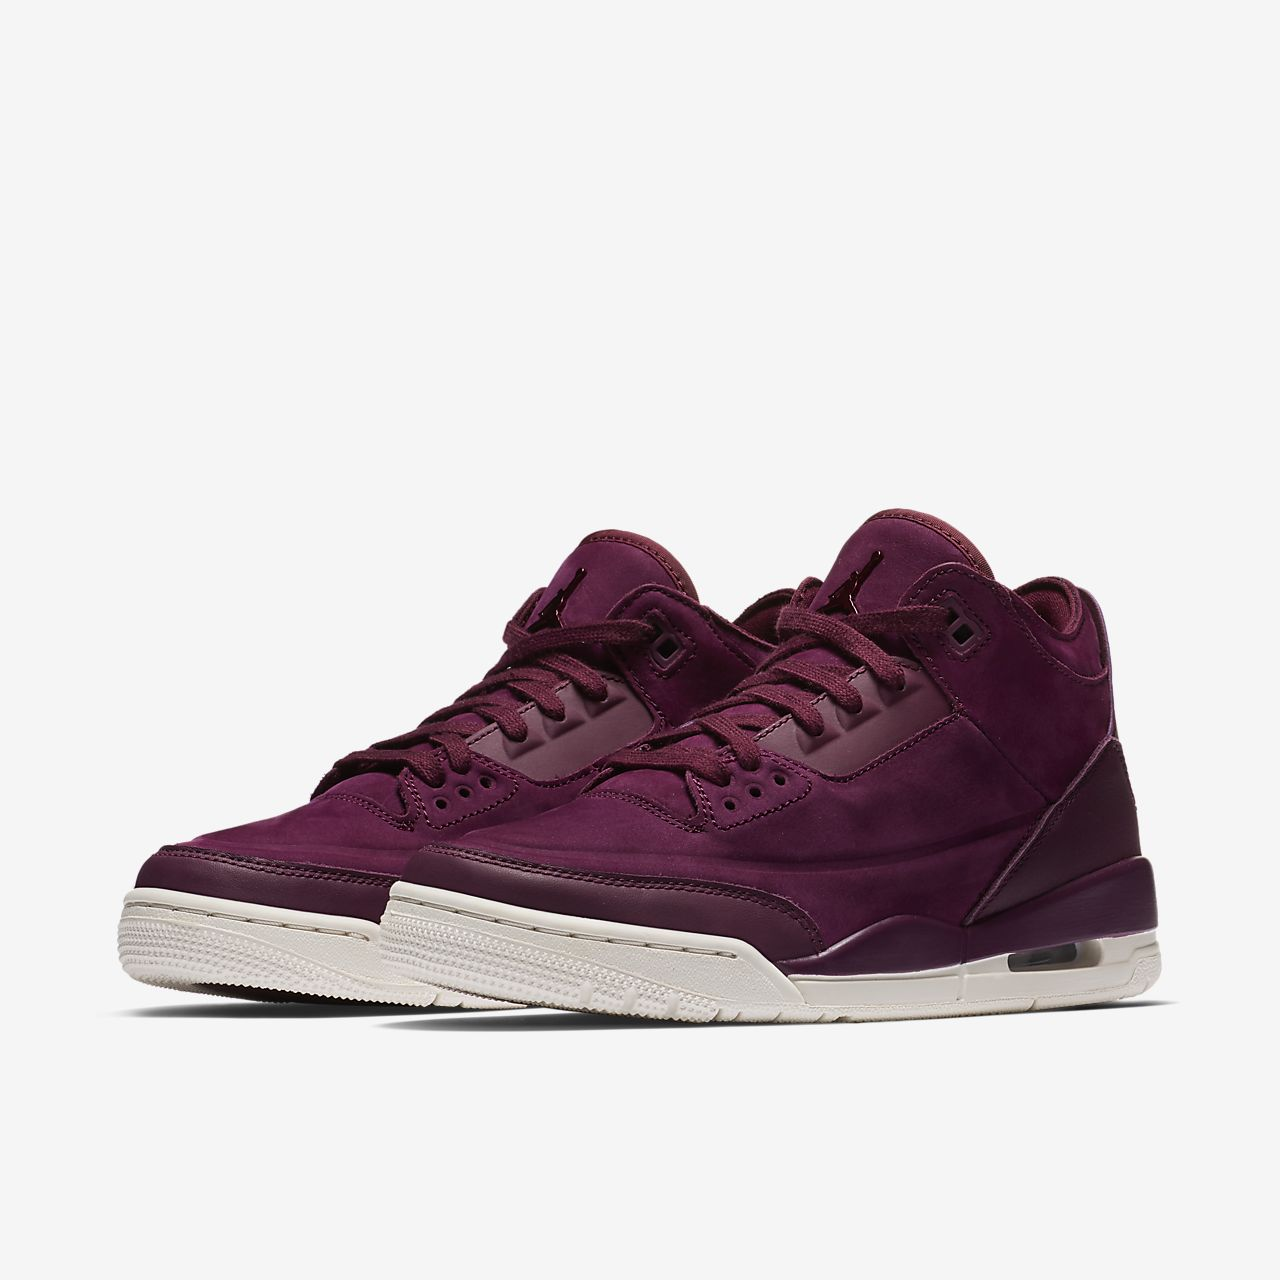 8aab0cf3090d Air Jordan 3 Retro SE Women s Shoe. Nike.com CA